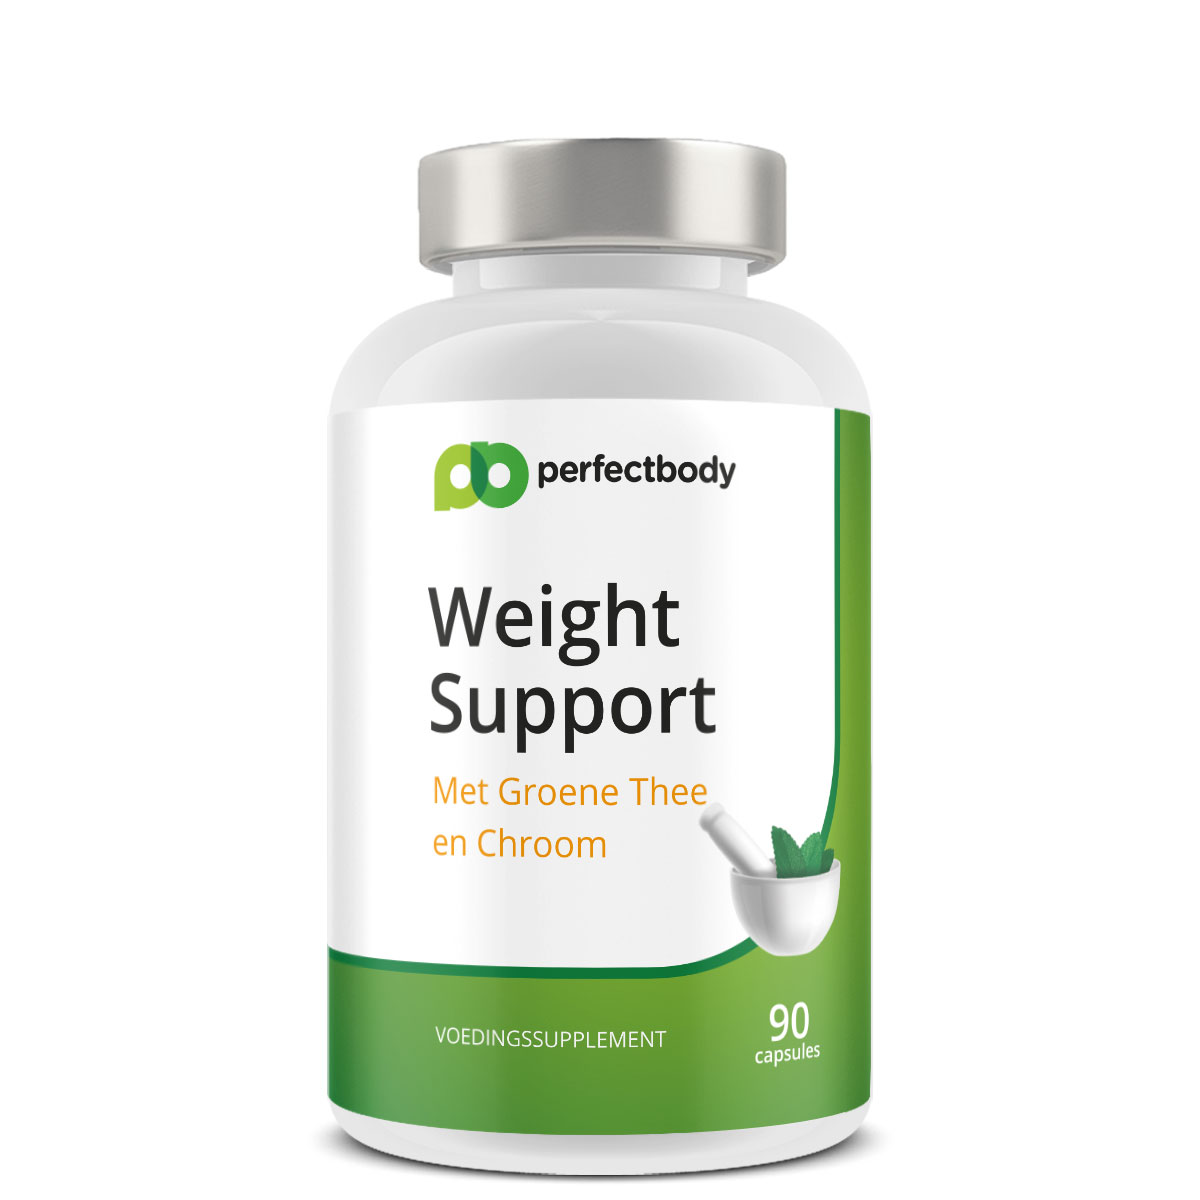 Perfectbody Weight Support 90 Capsules